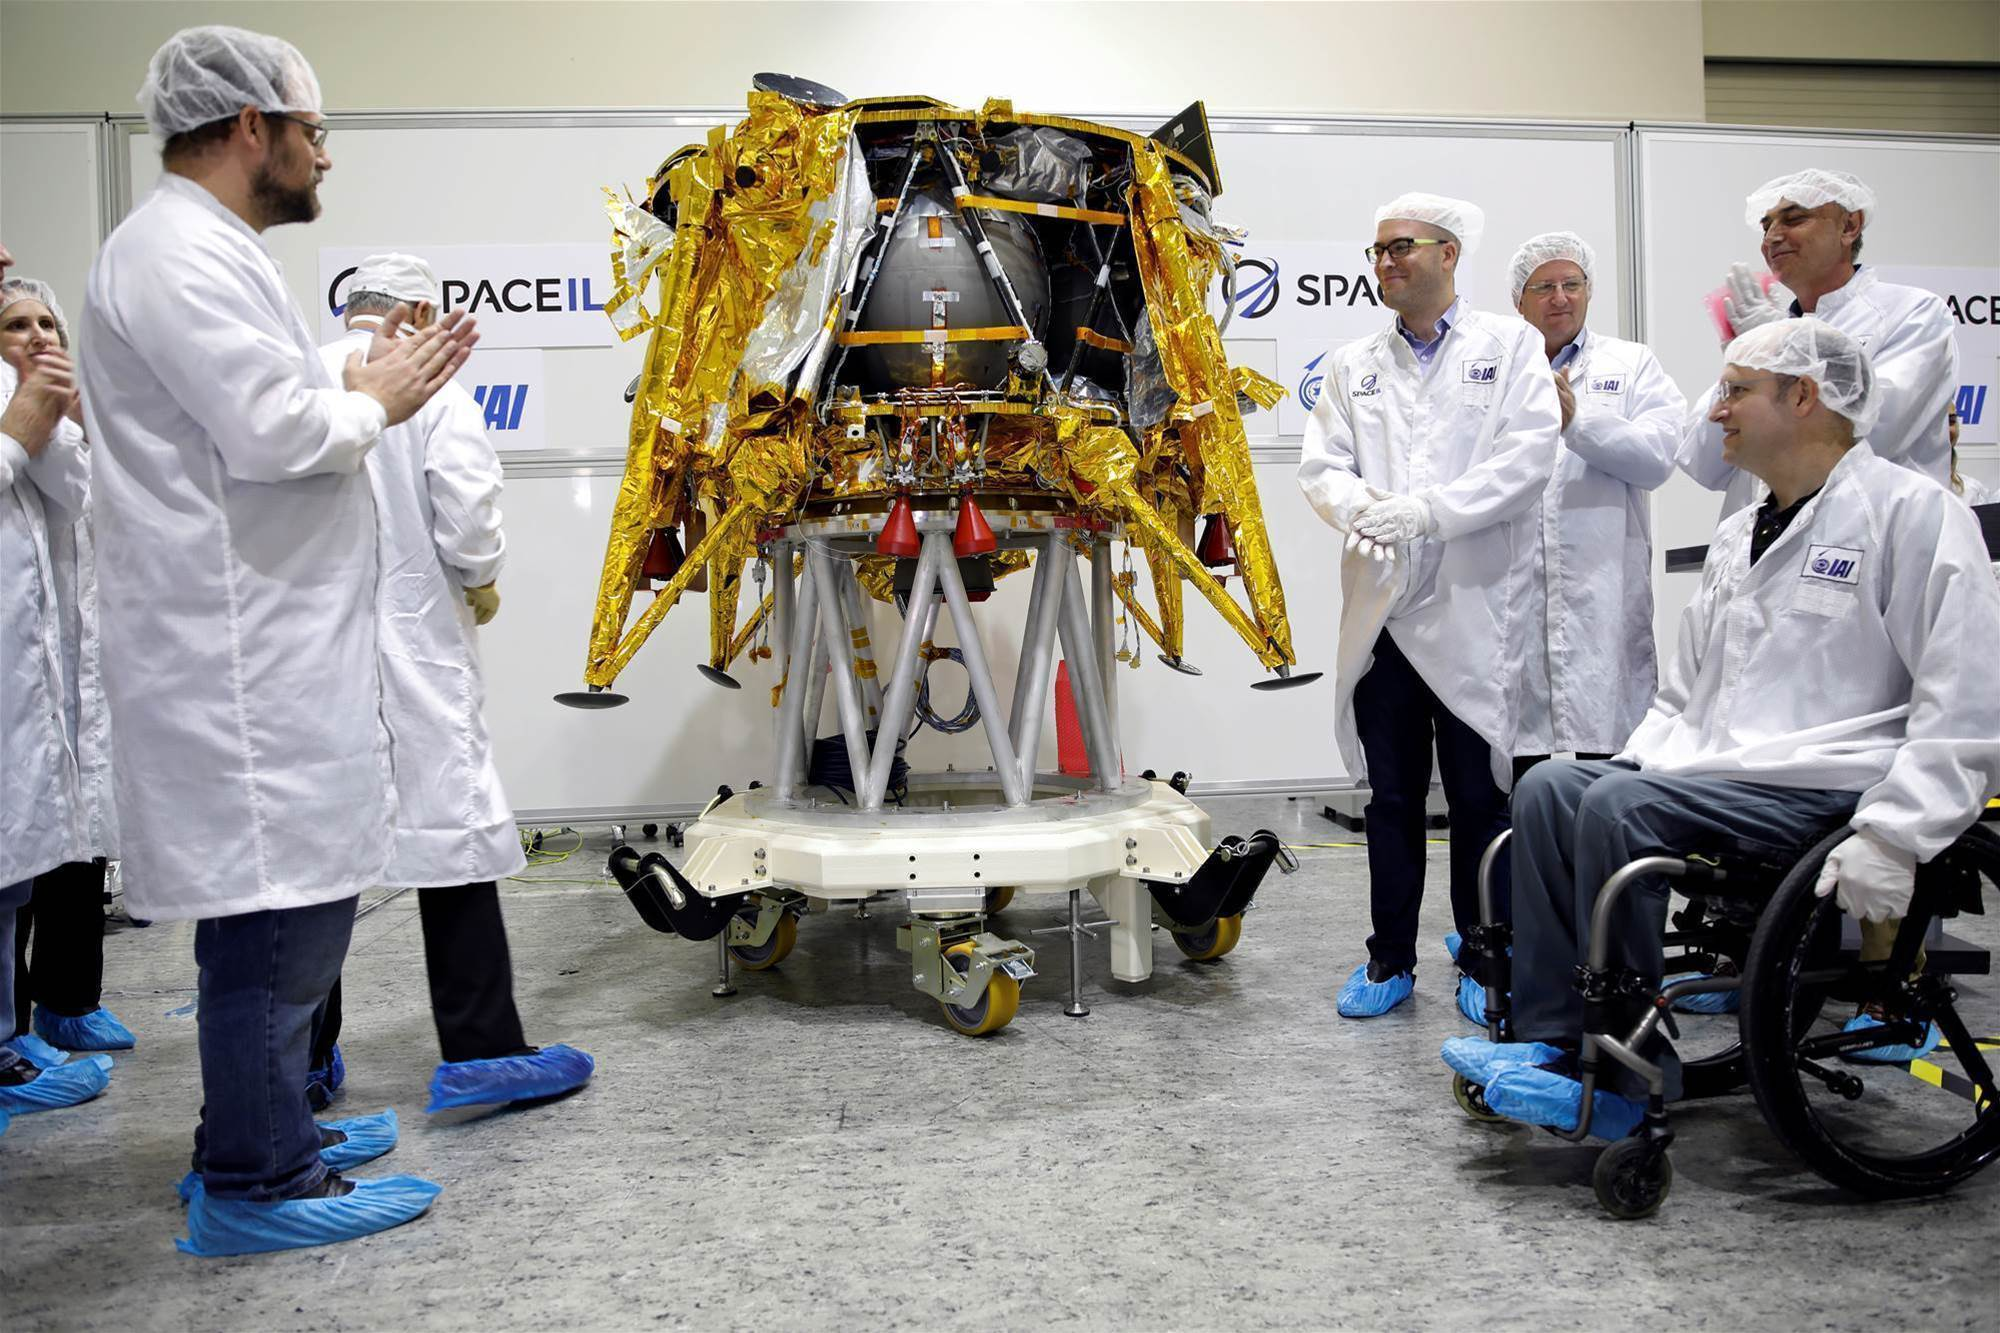 Israeli spacecraft gets final element before 2019 moon launch